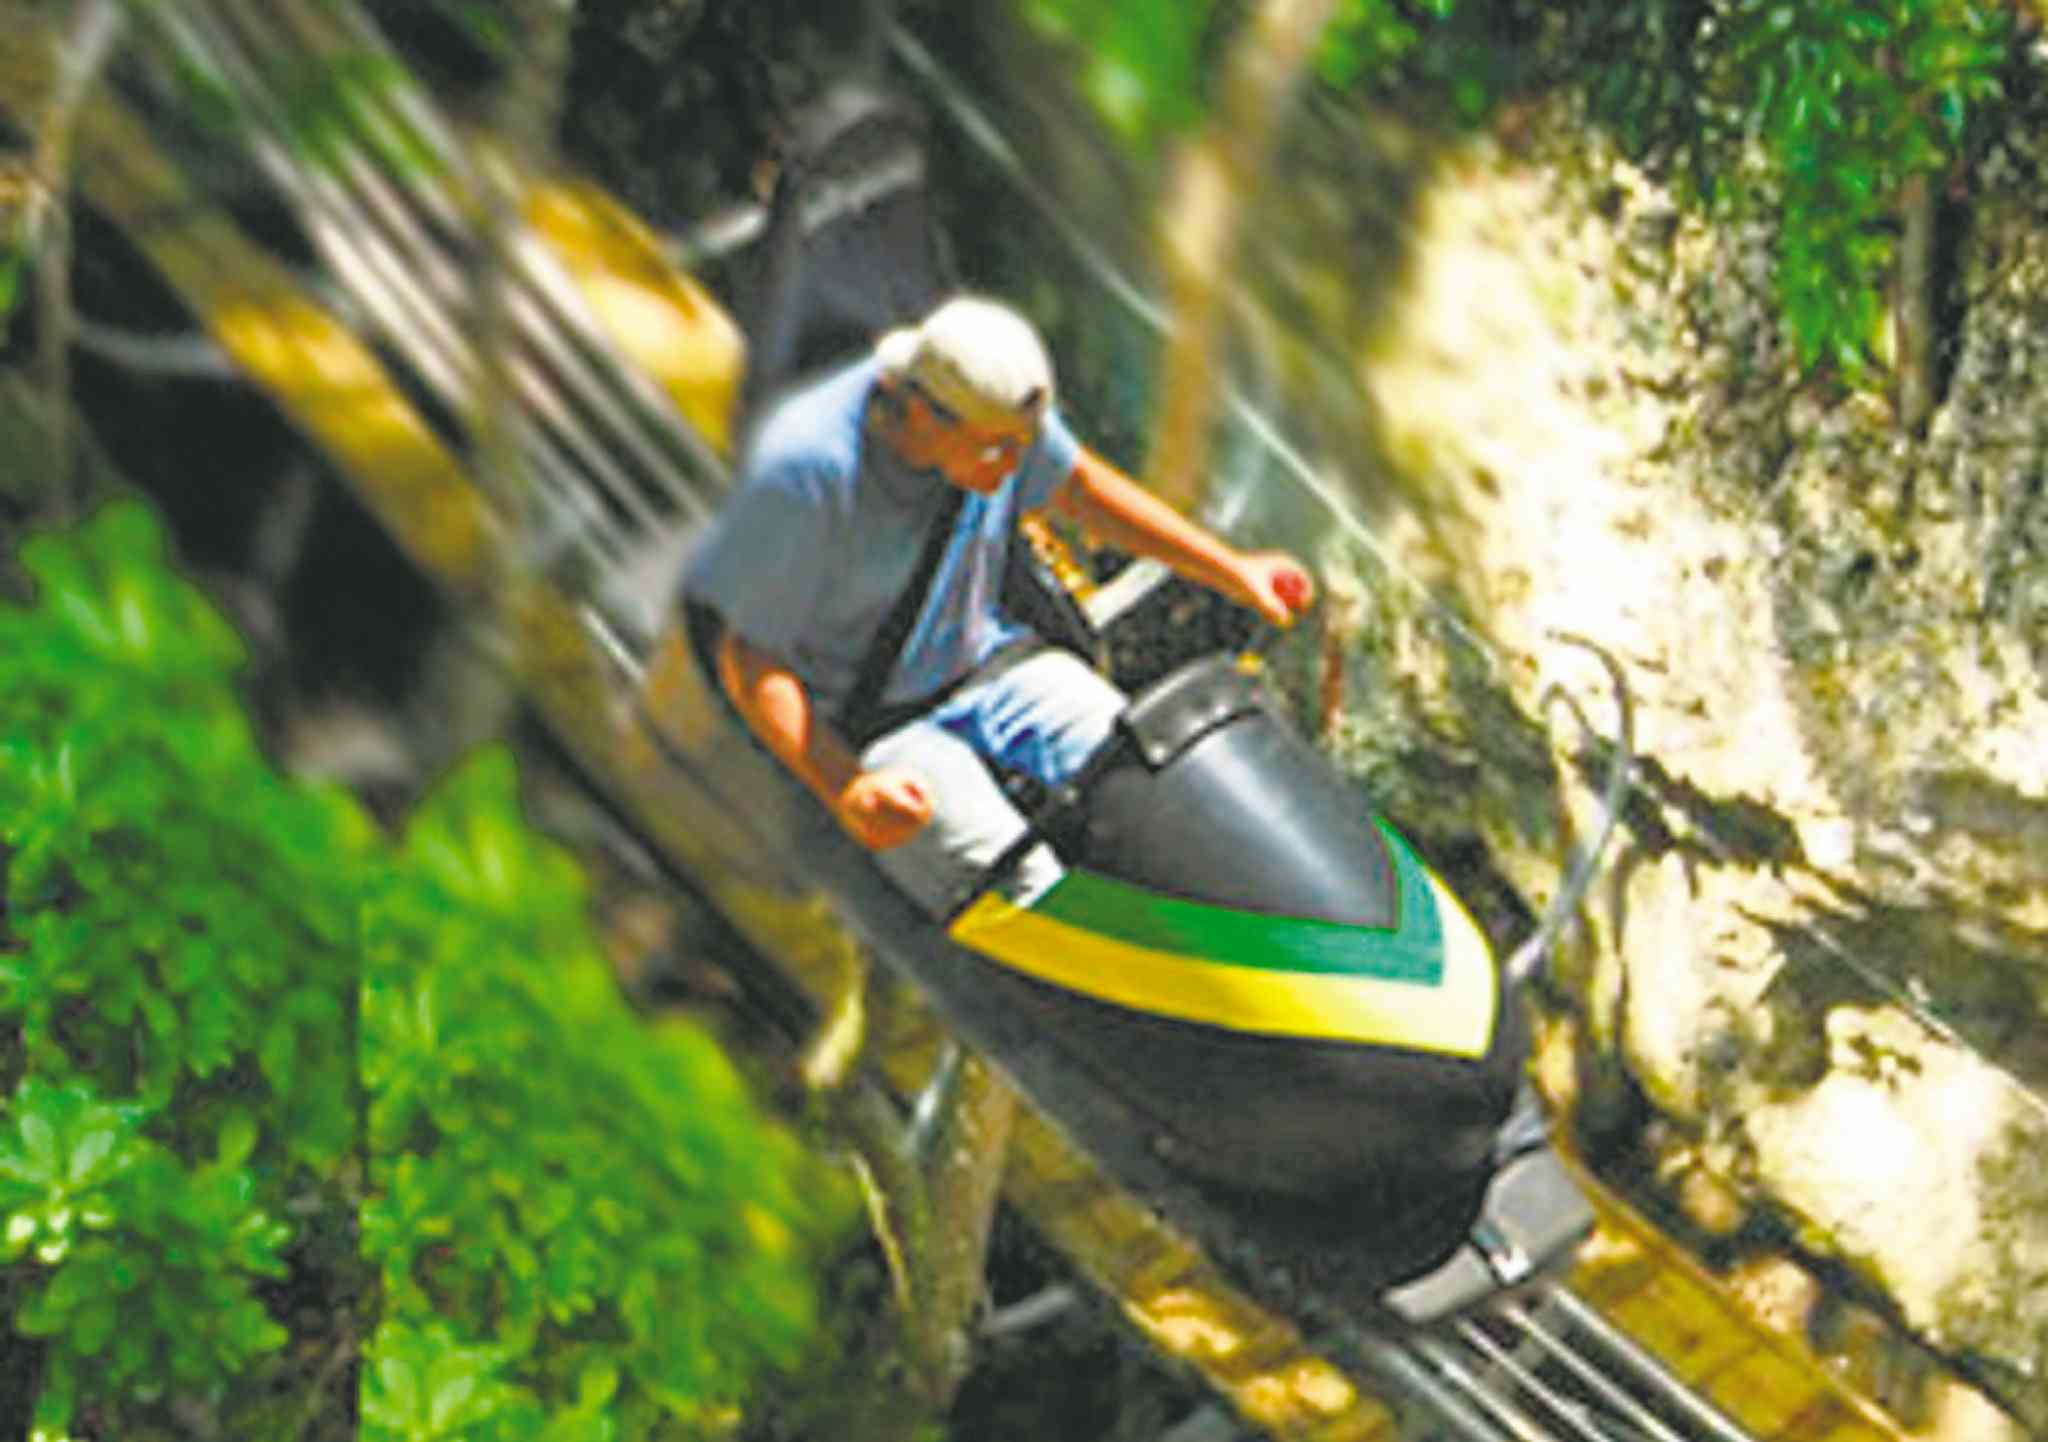 Bobsled Jamaica is a thrill-ride at Rainforest Adventures Mystic Mountain in Jamaica.